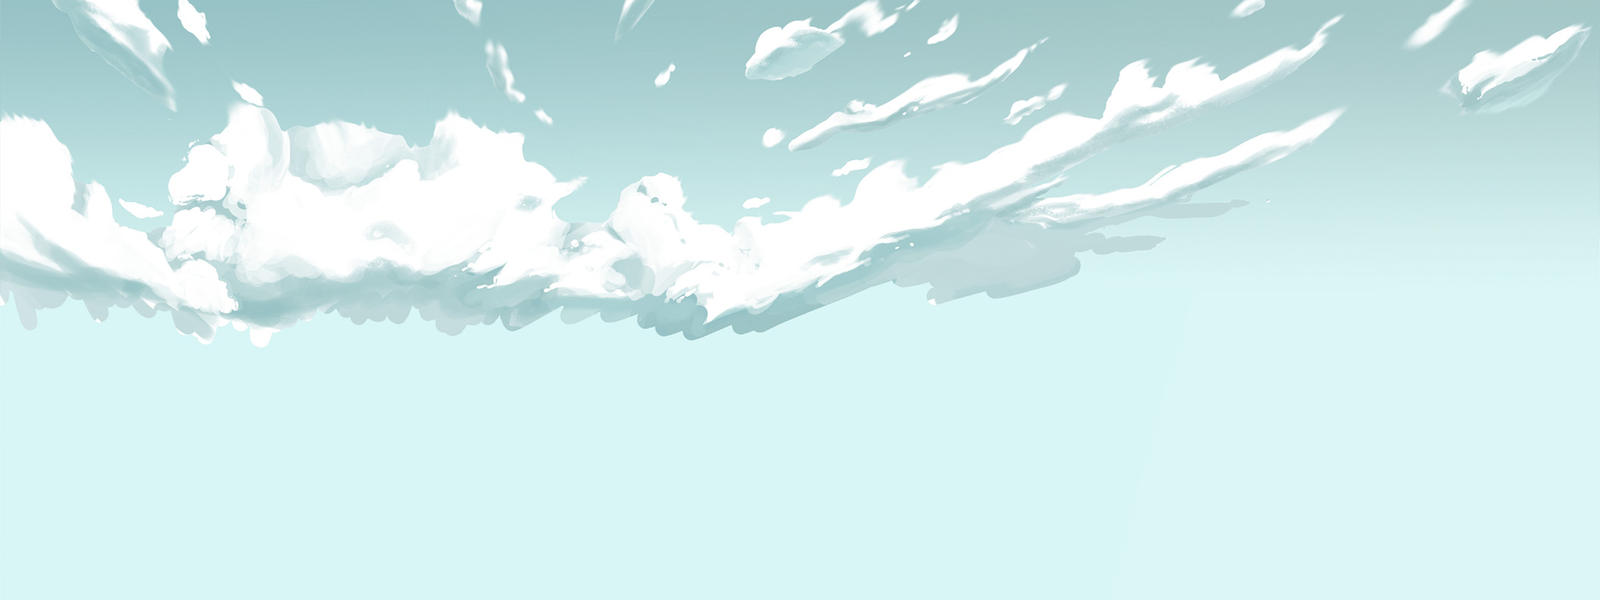 illustration of blue sky and clouds